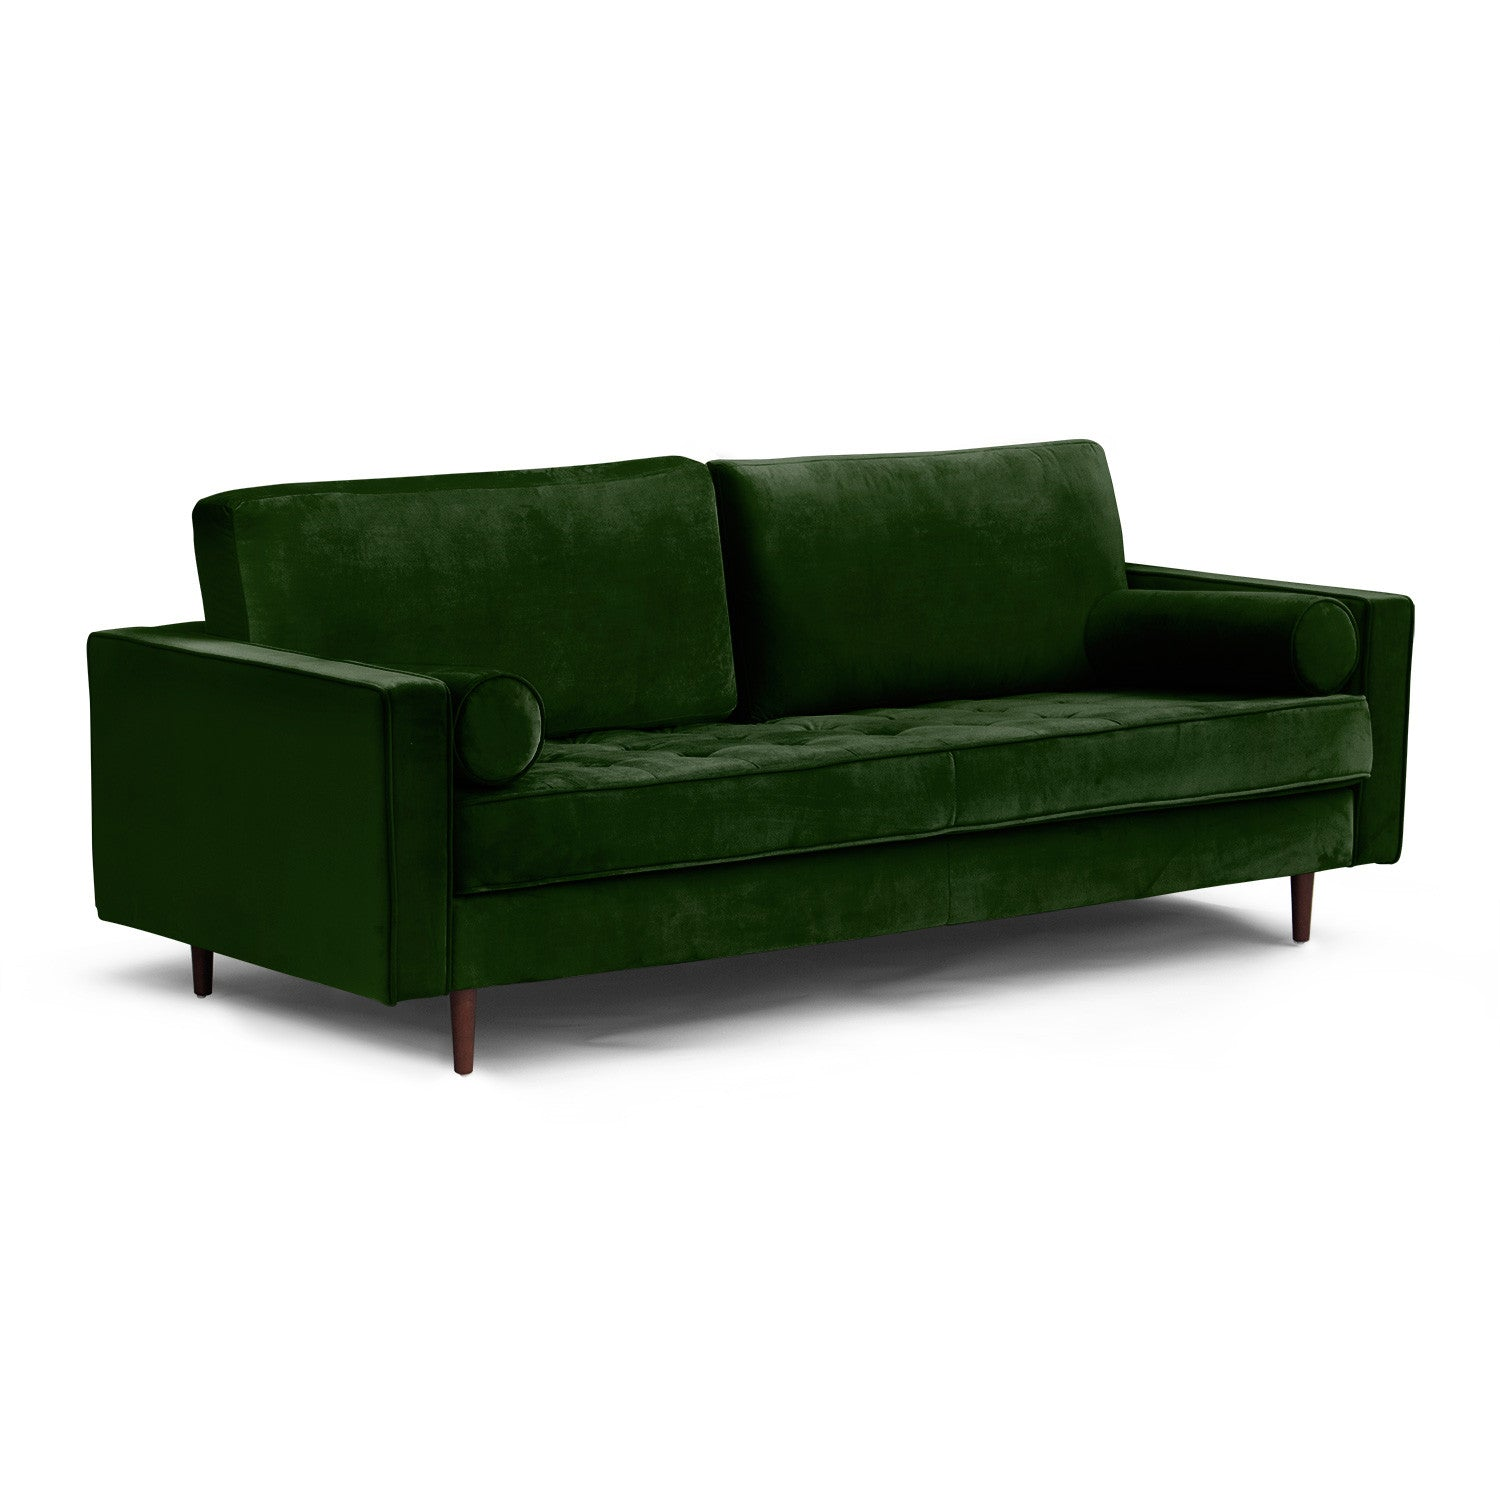 Pillows For Mid Century Modern Sofa : Mid Century Modern Tufted Sofa with Bolster Pillows Mod House